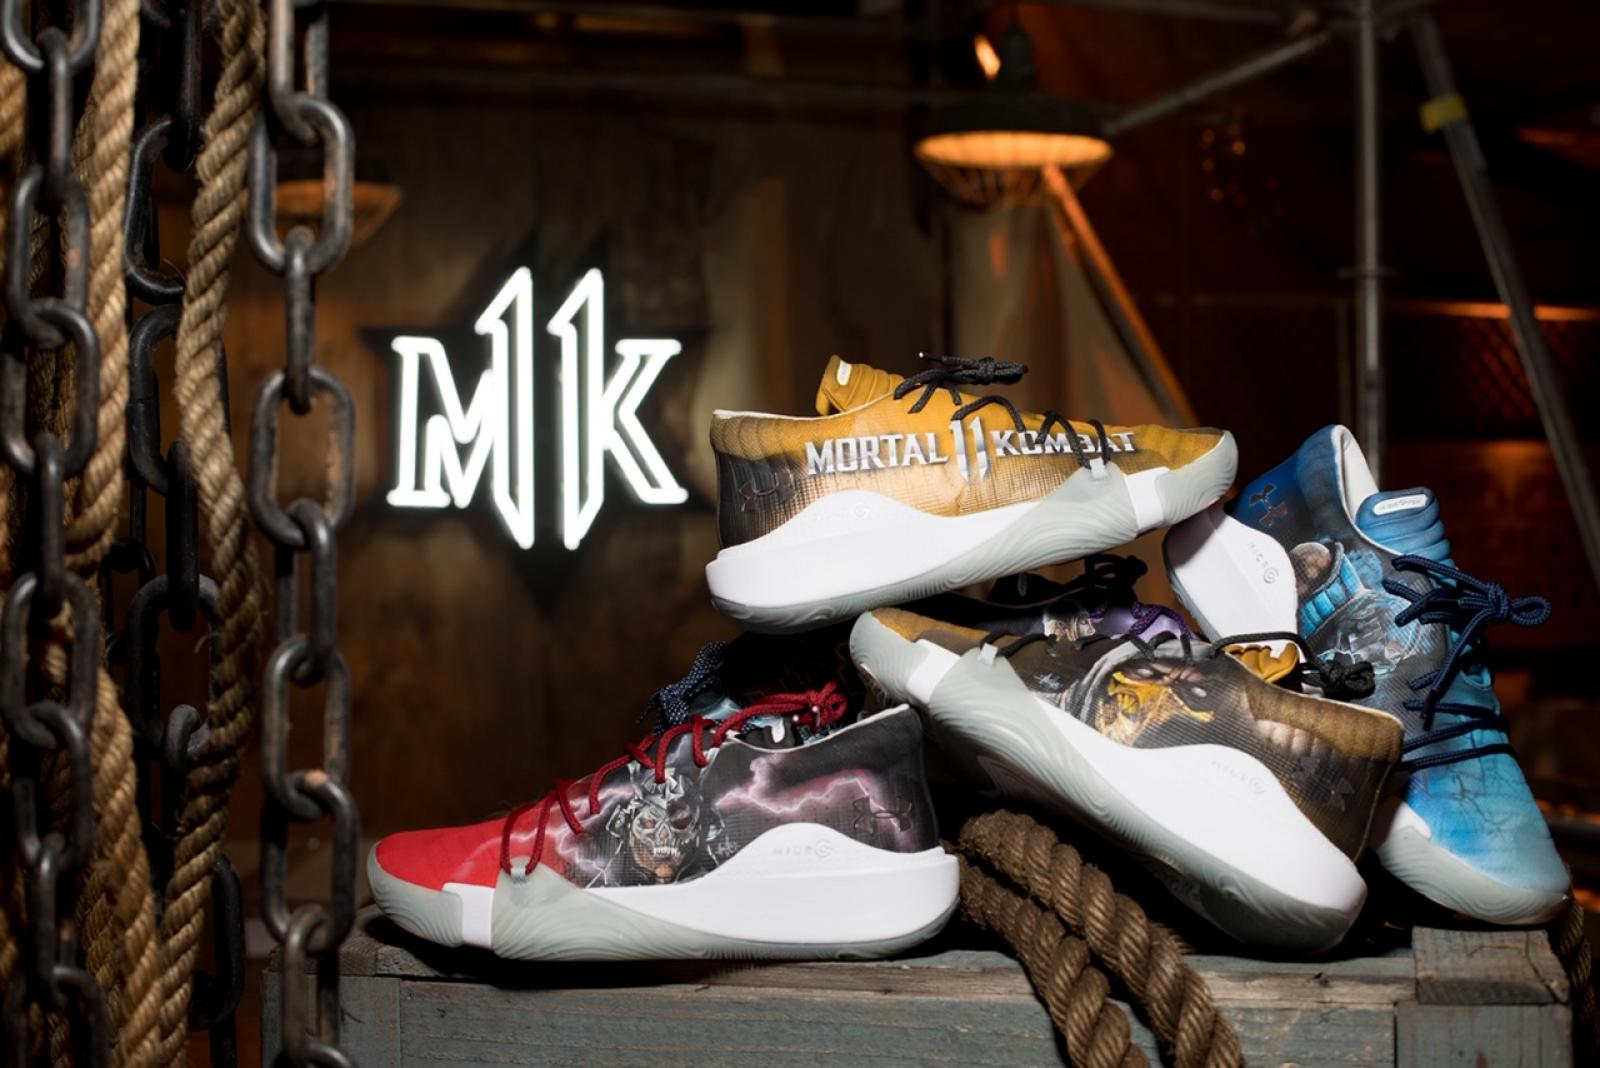 ffbb77747 Under Armour and Mortal Kombat Deliver a Footwear Fatality c/o Mache Customs